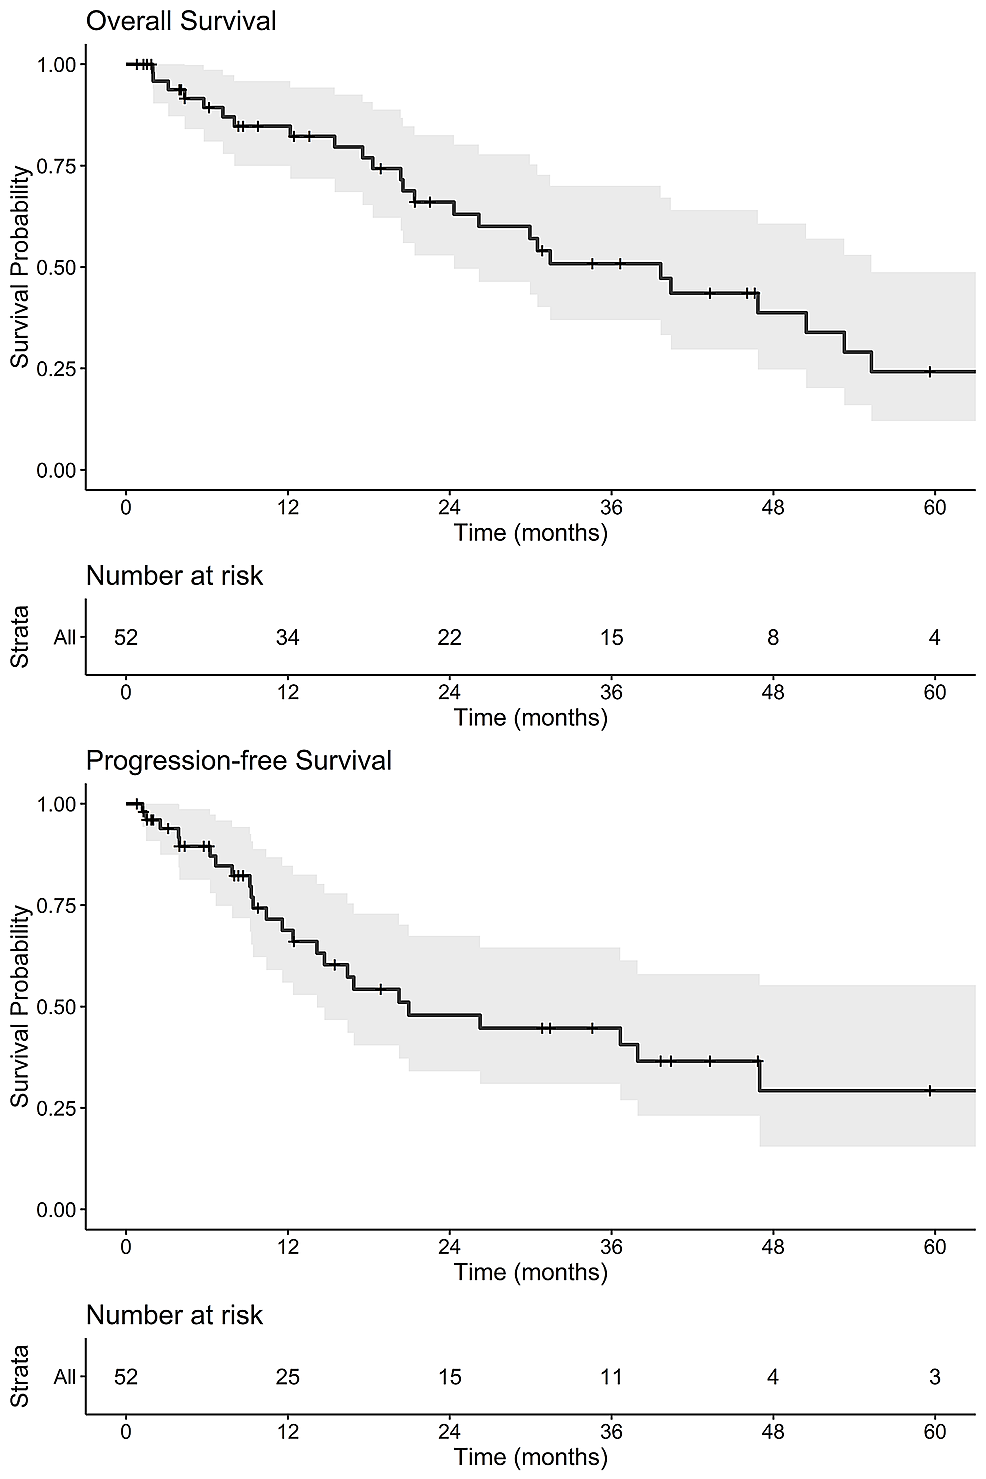 Kaplan-Meier-Plots-of-Overall-Survival-and-Progression-free-Survival